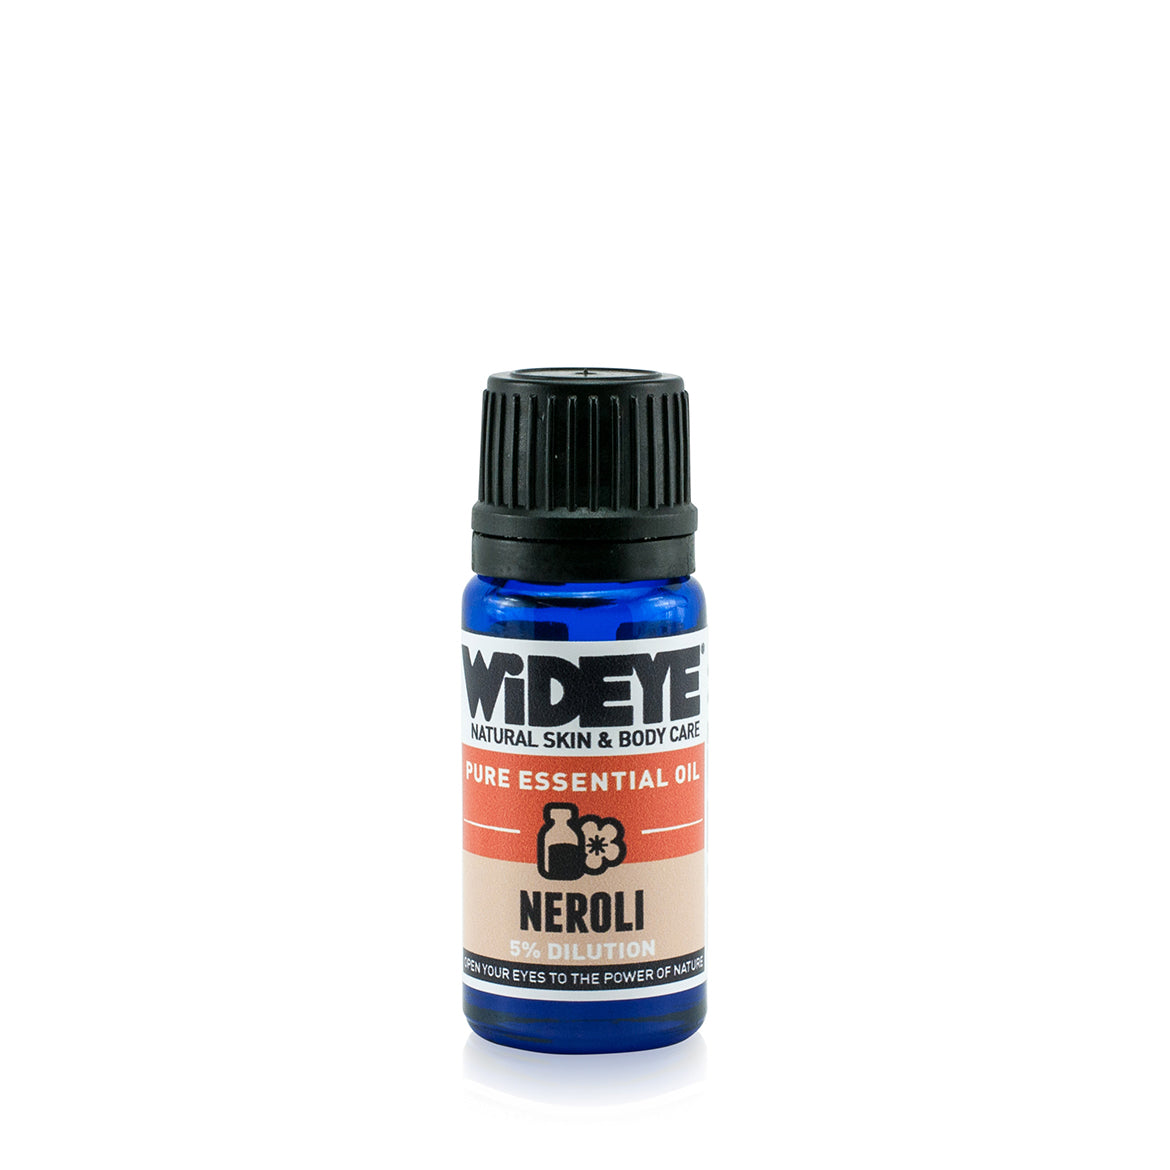 Natural aromatherapy Neroli essential oil in glass bottle by WiDEYE in Rye.